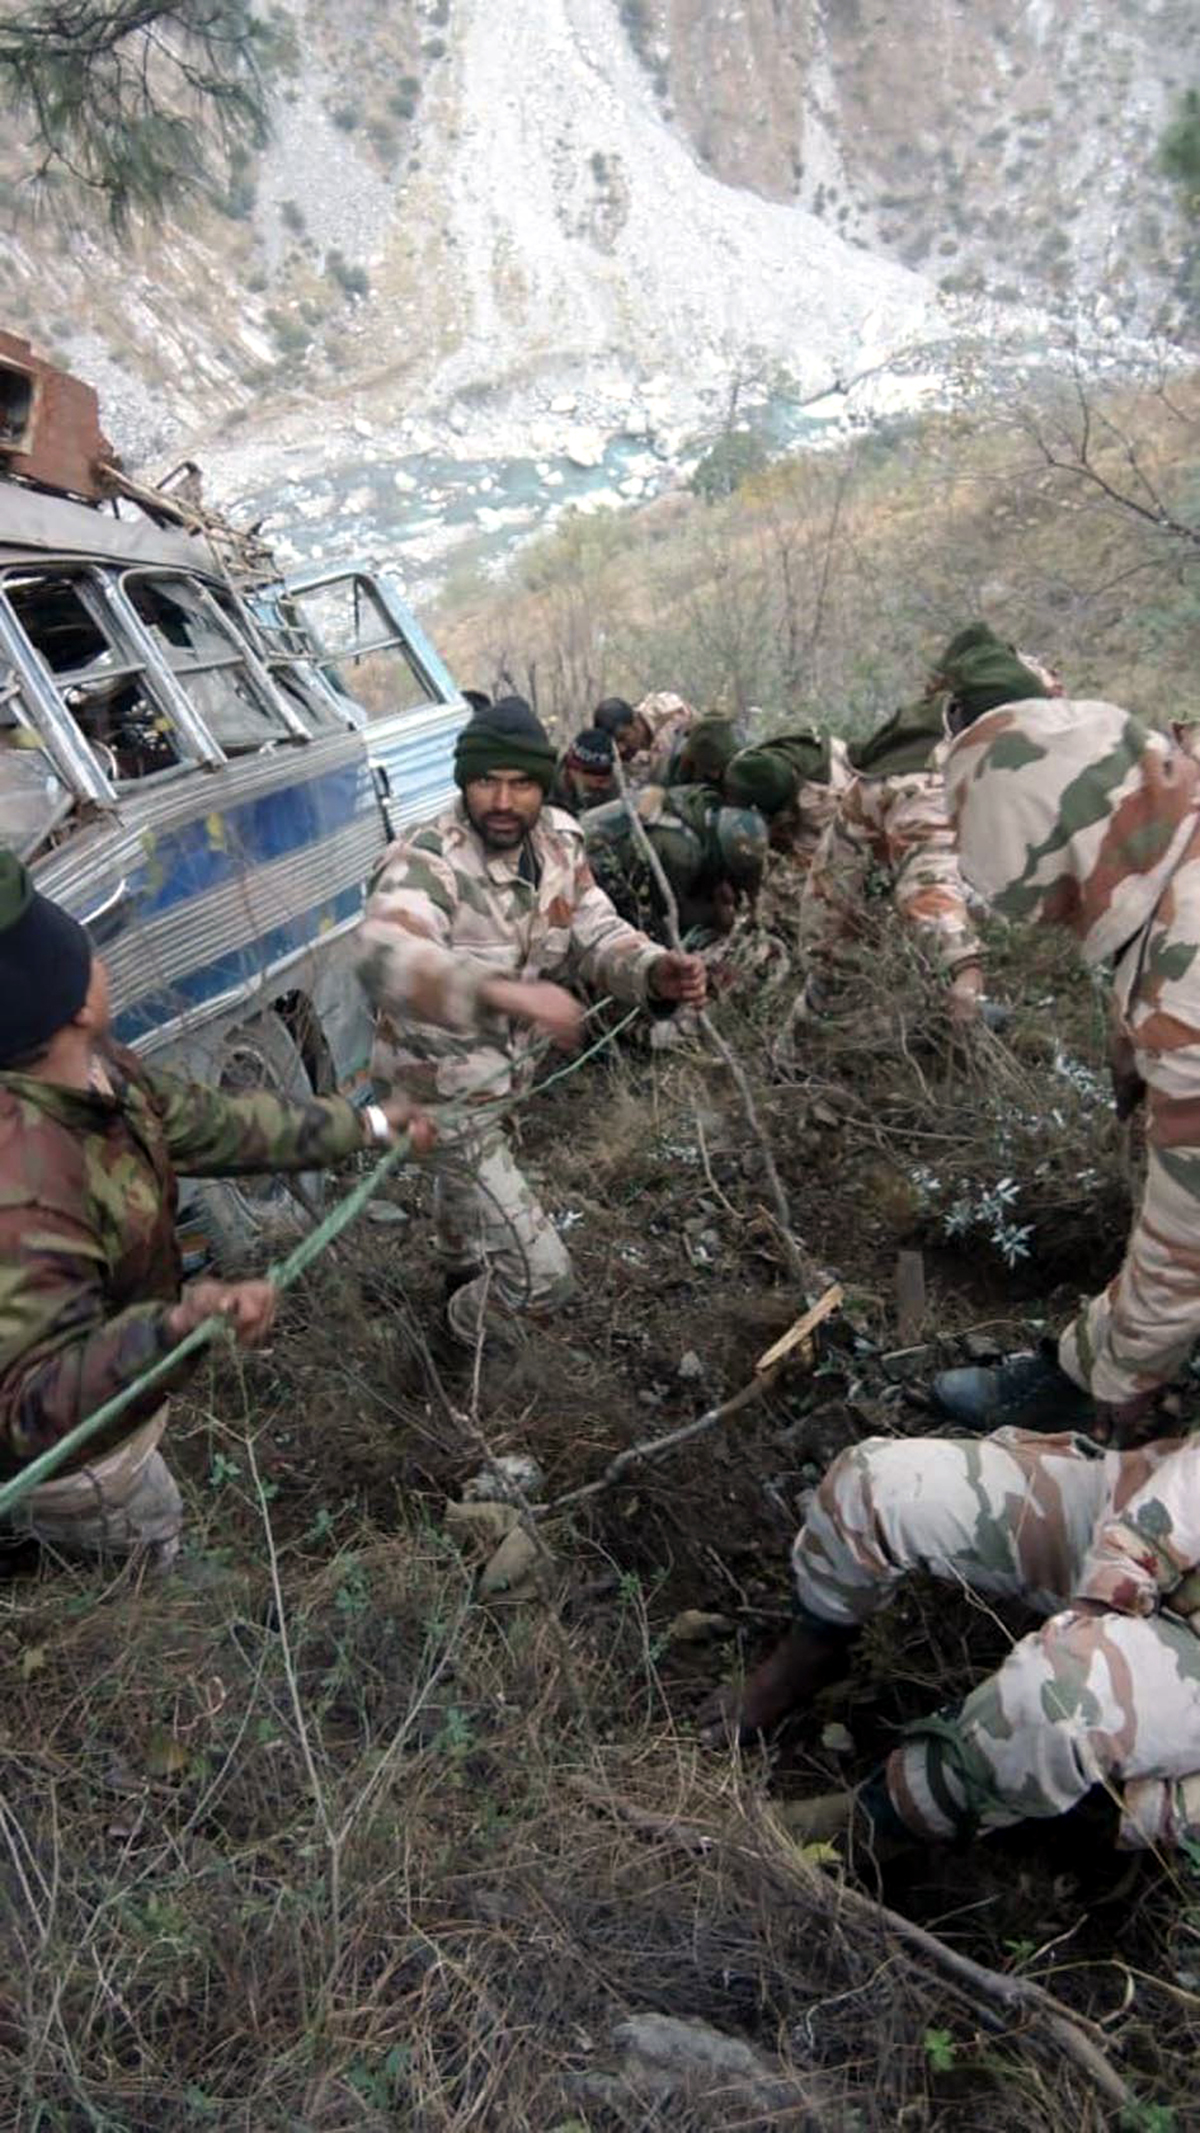 Rescue work in progress after a bus carrying ITBP personnel rolls down into a gorge at Khooni Nallah in Ramban on Monday. (UNI)